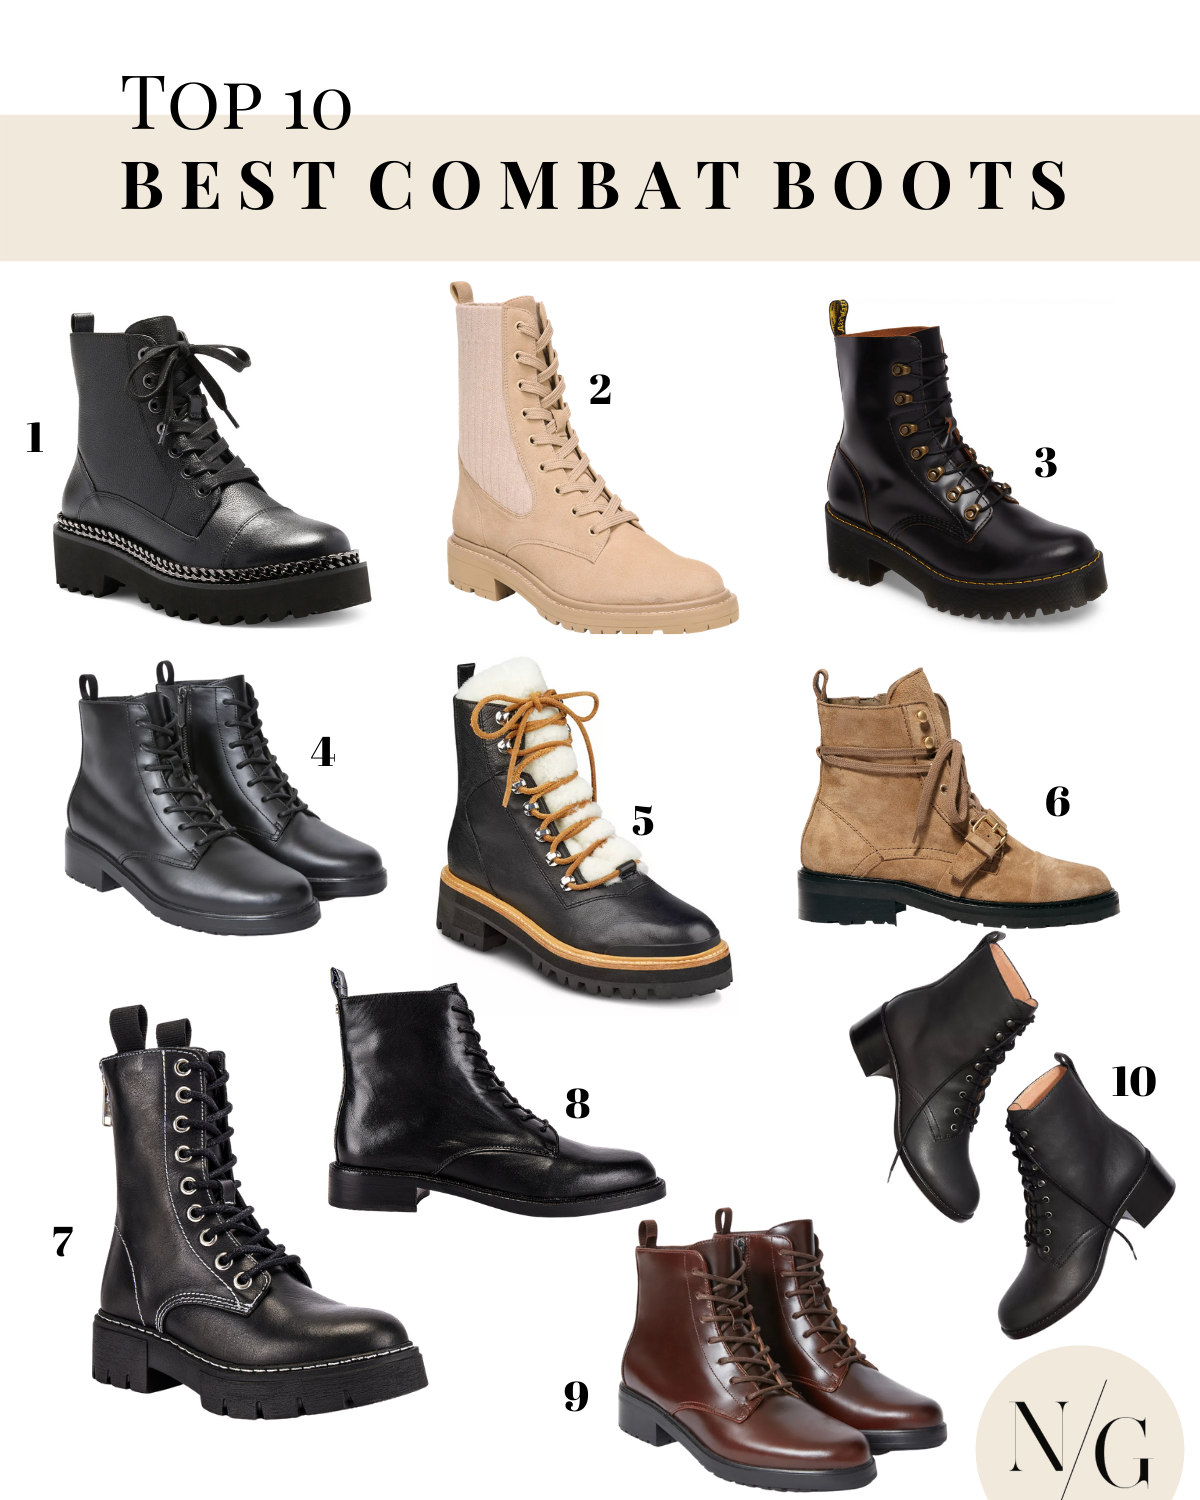 Top 10 Best Women's Combat Boots - Navy Grace - Camilla Thurman |Combat Boots by popular San Diego fashion blog, Navy Grace: collage image of combat boots.